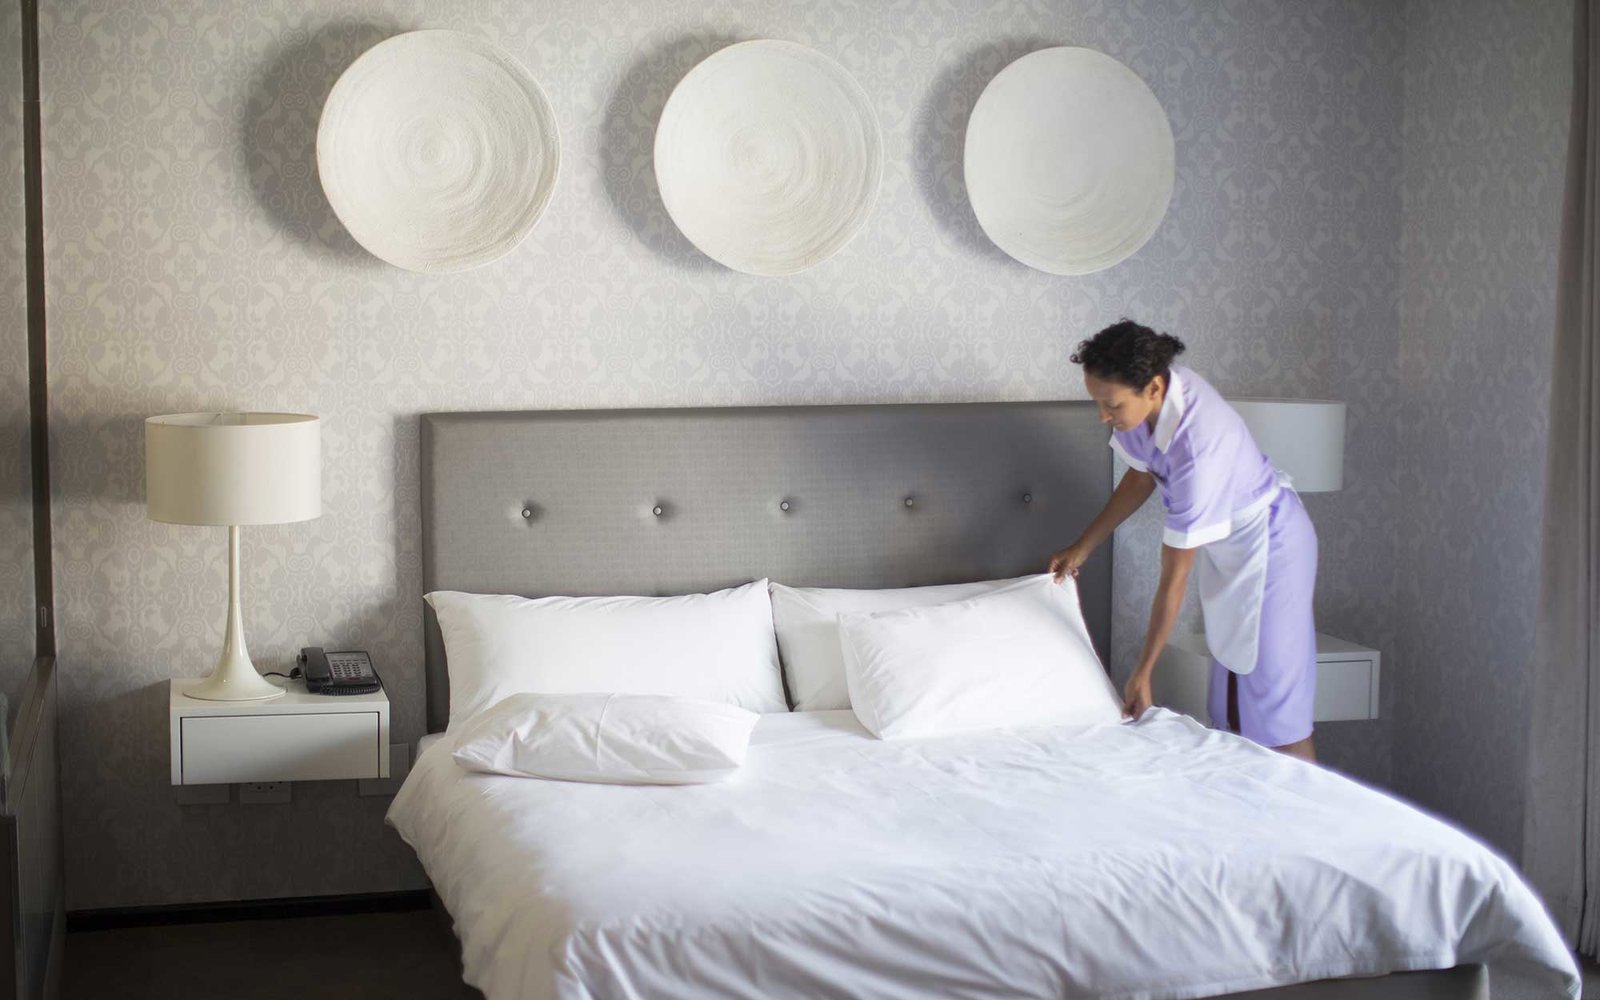 Hotel Housekeeping Making Bed